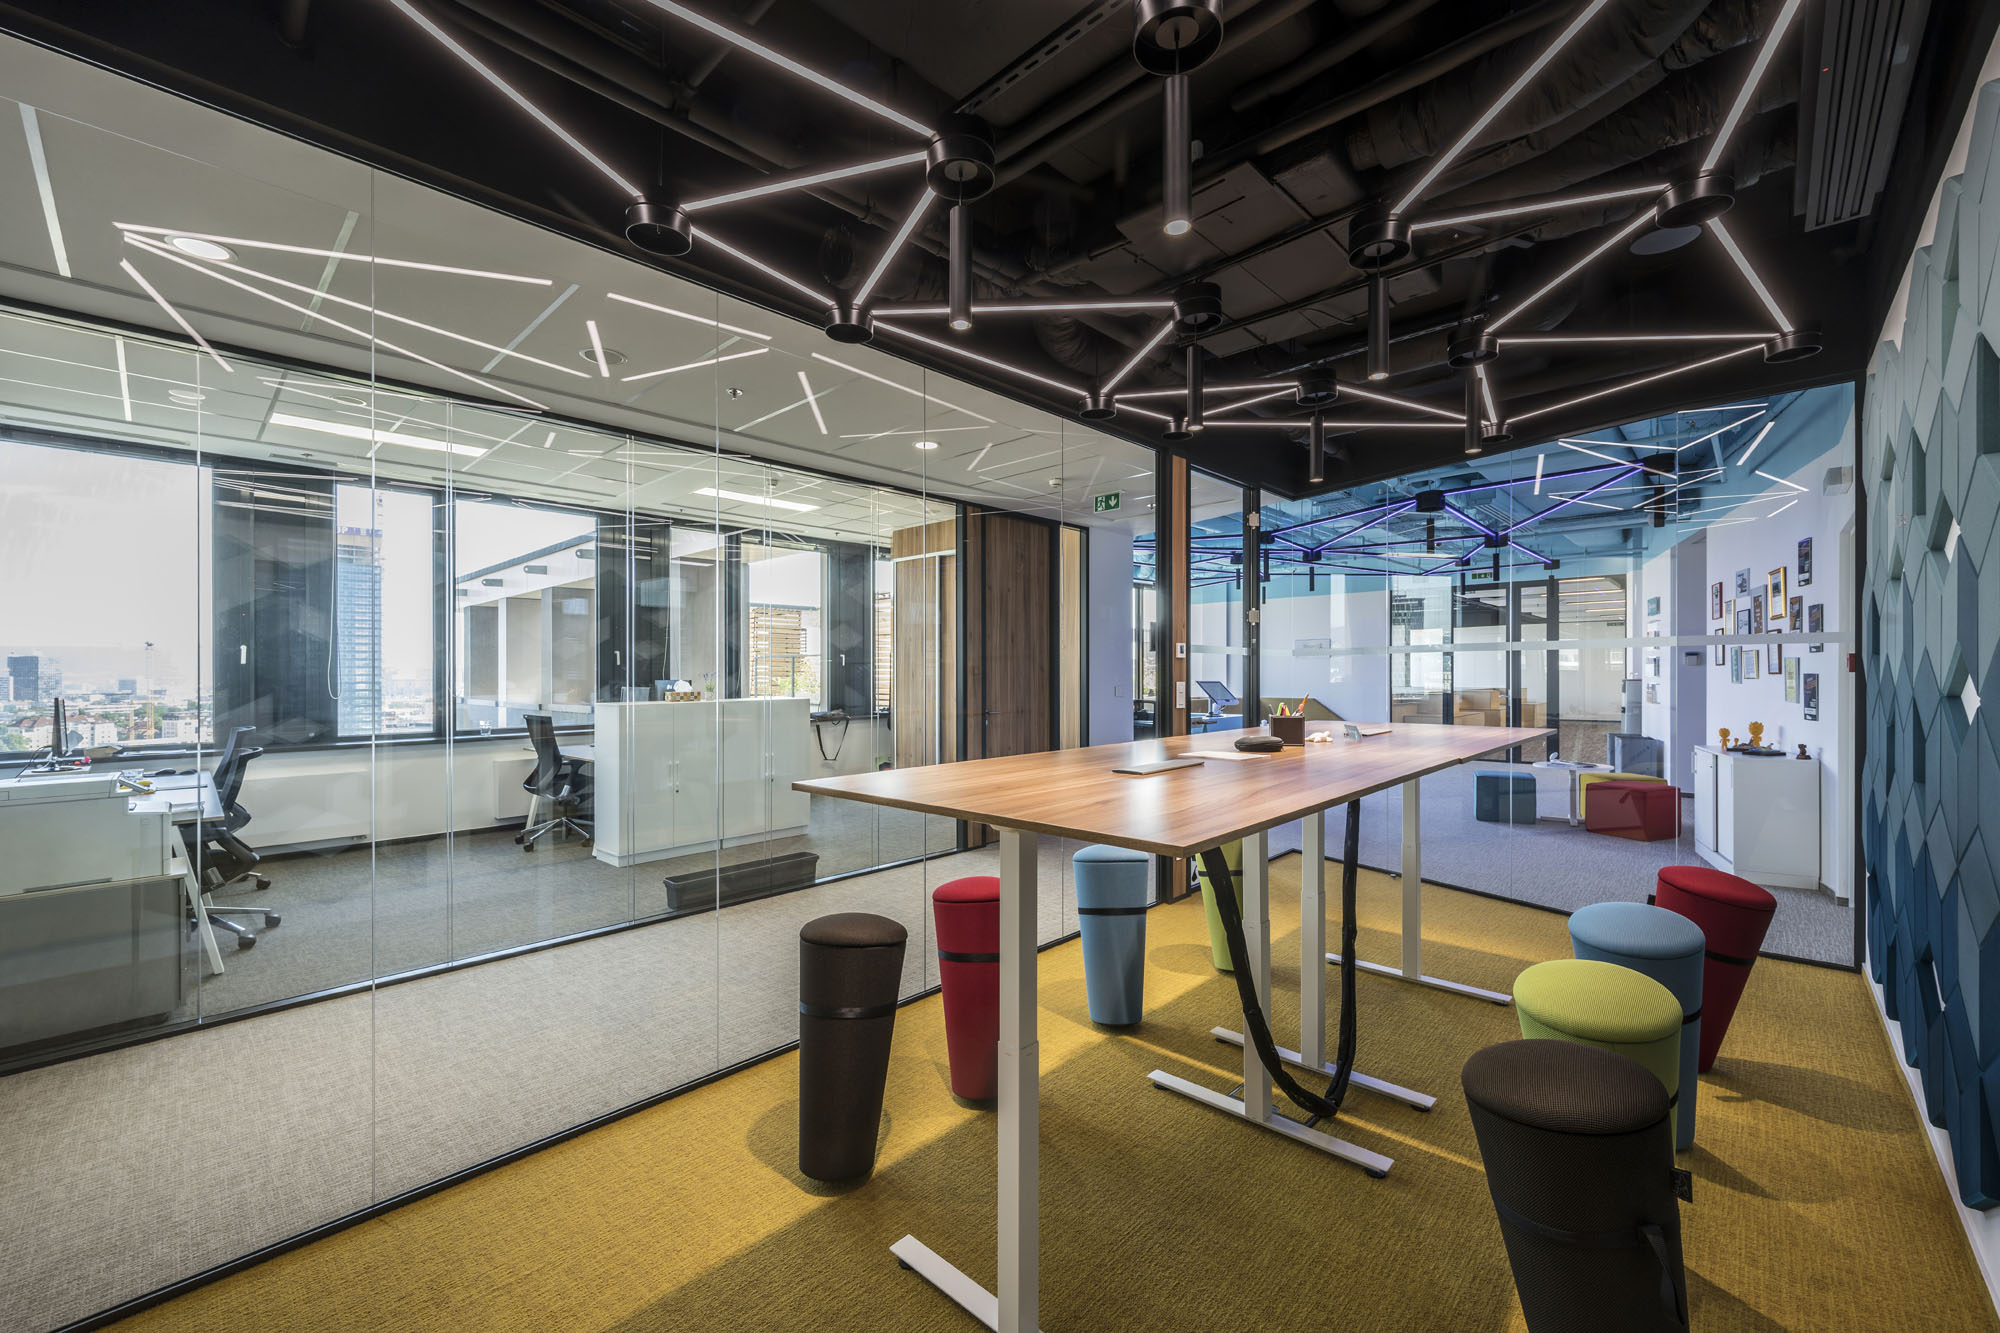 Interior for creative thinking and active work style